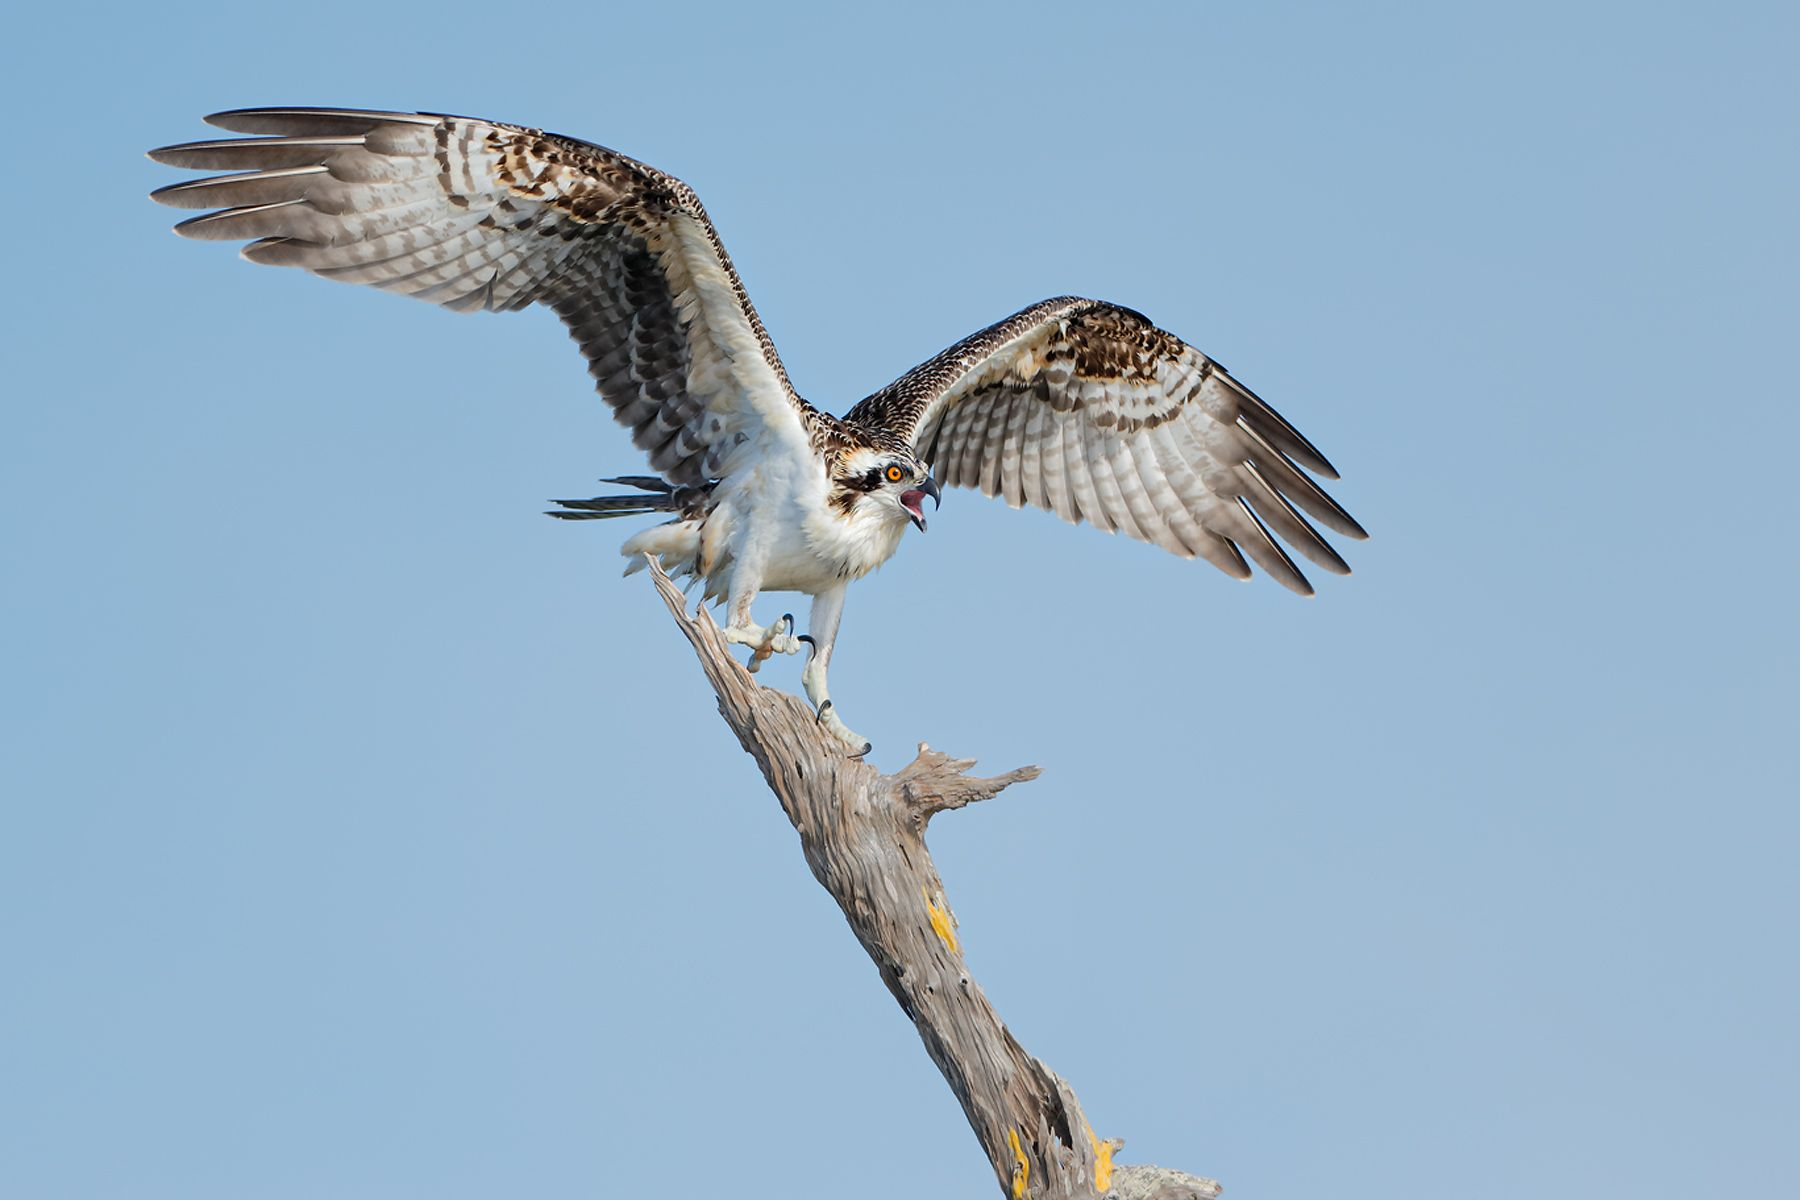 Osprey-chick-landing-on-perch_E7T1184-Lake-Blue-Cypress,-Indian-River-County,-FL,-USA.jpg